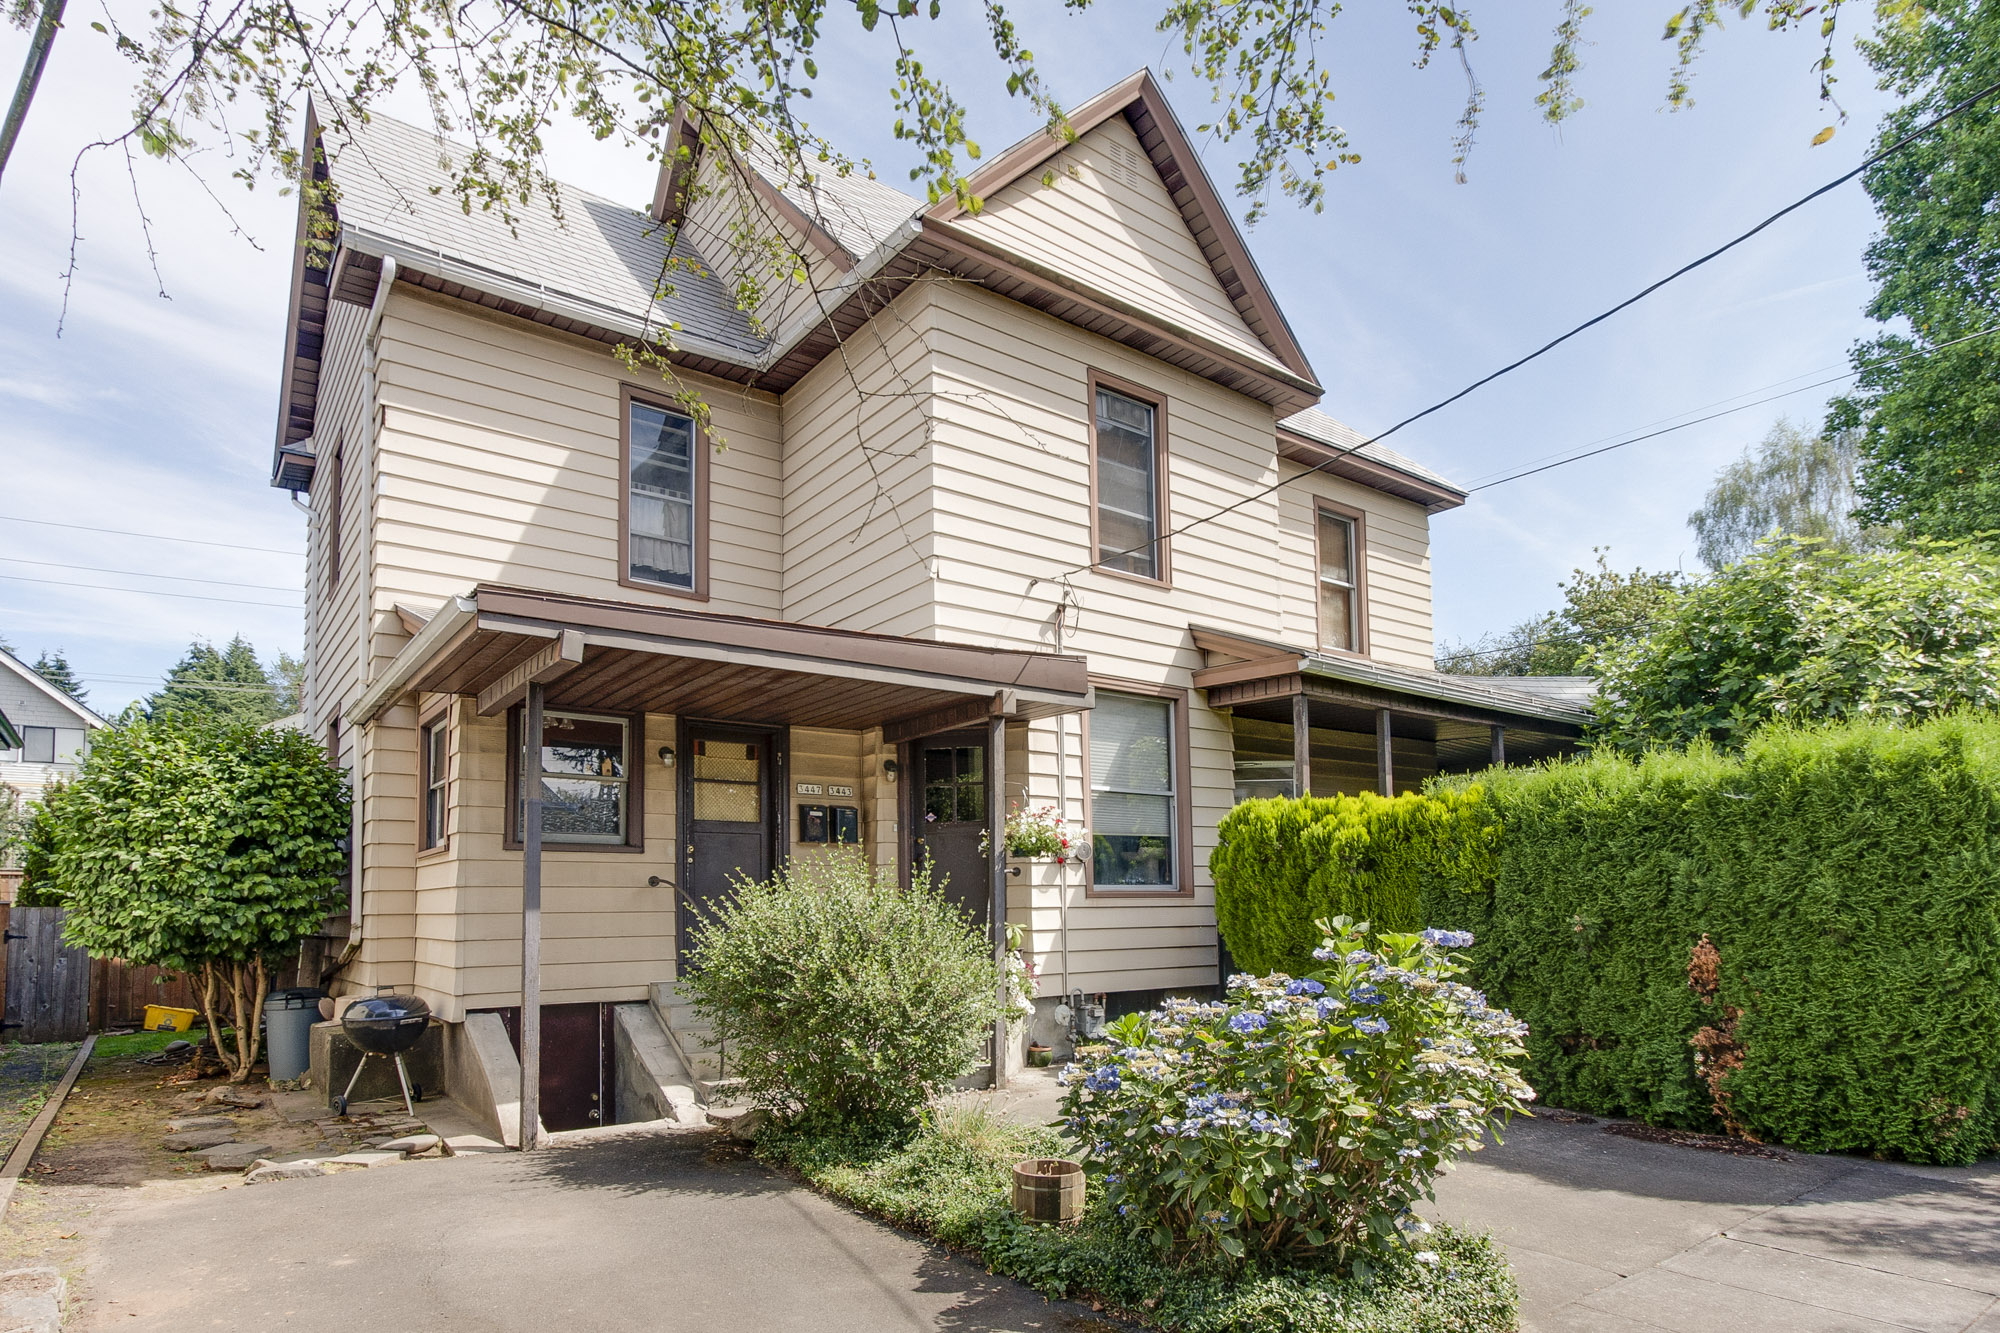 3443 SE Washington st - $545,000  Sold for $545,000